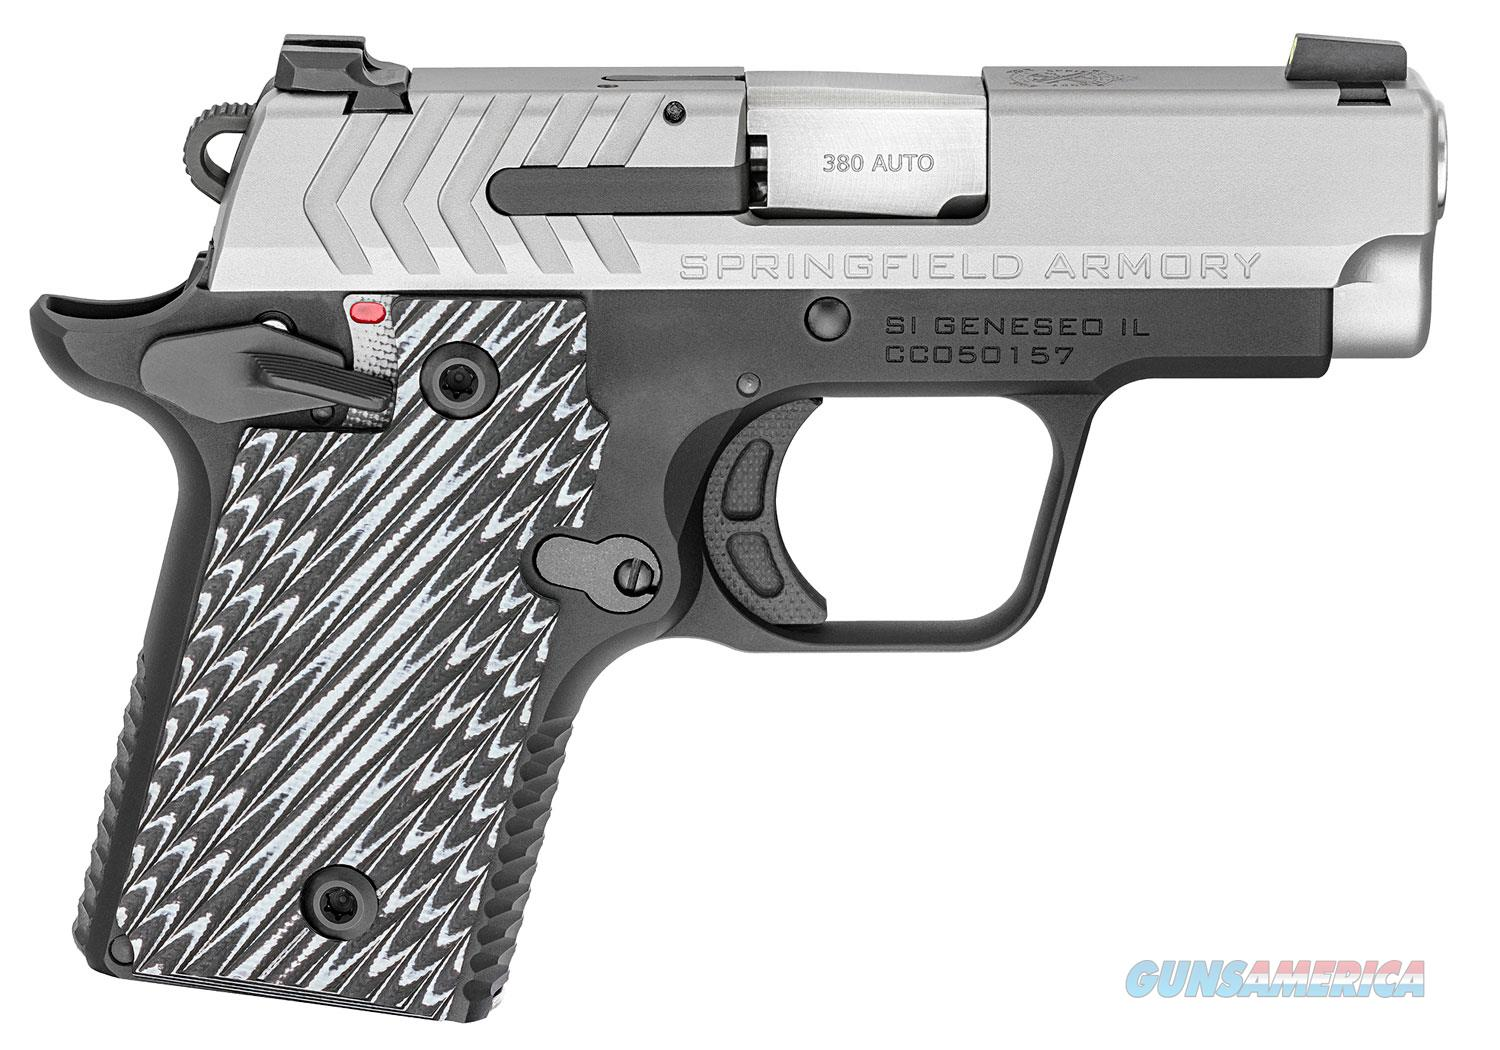 "SPRINGFIELD ARMORY 911 Bio-Tone 380 ACP 6+1 / 7+1 mags Tritium Front / Rear Night Sights ""NO CREDIT CARD FEE""  Guns > Pistols > Springfield Armory Pistols > 911"